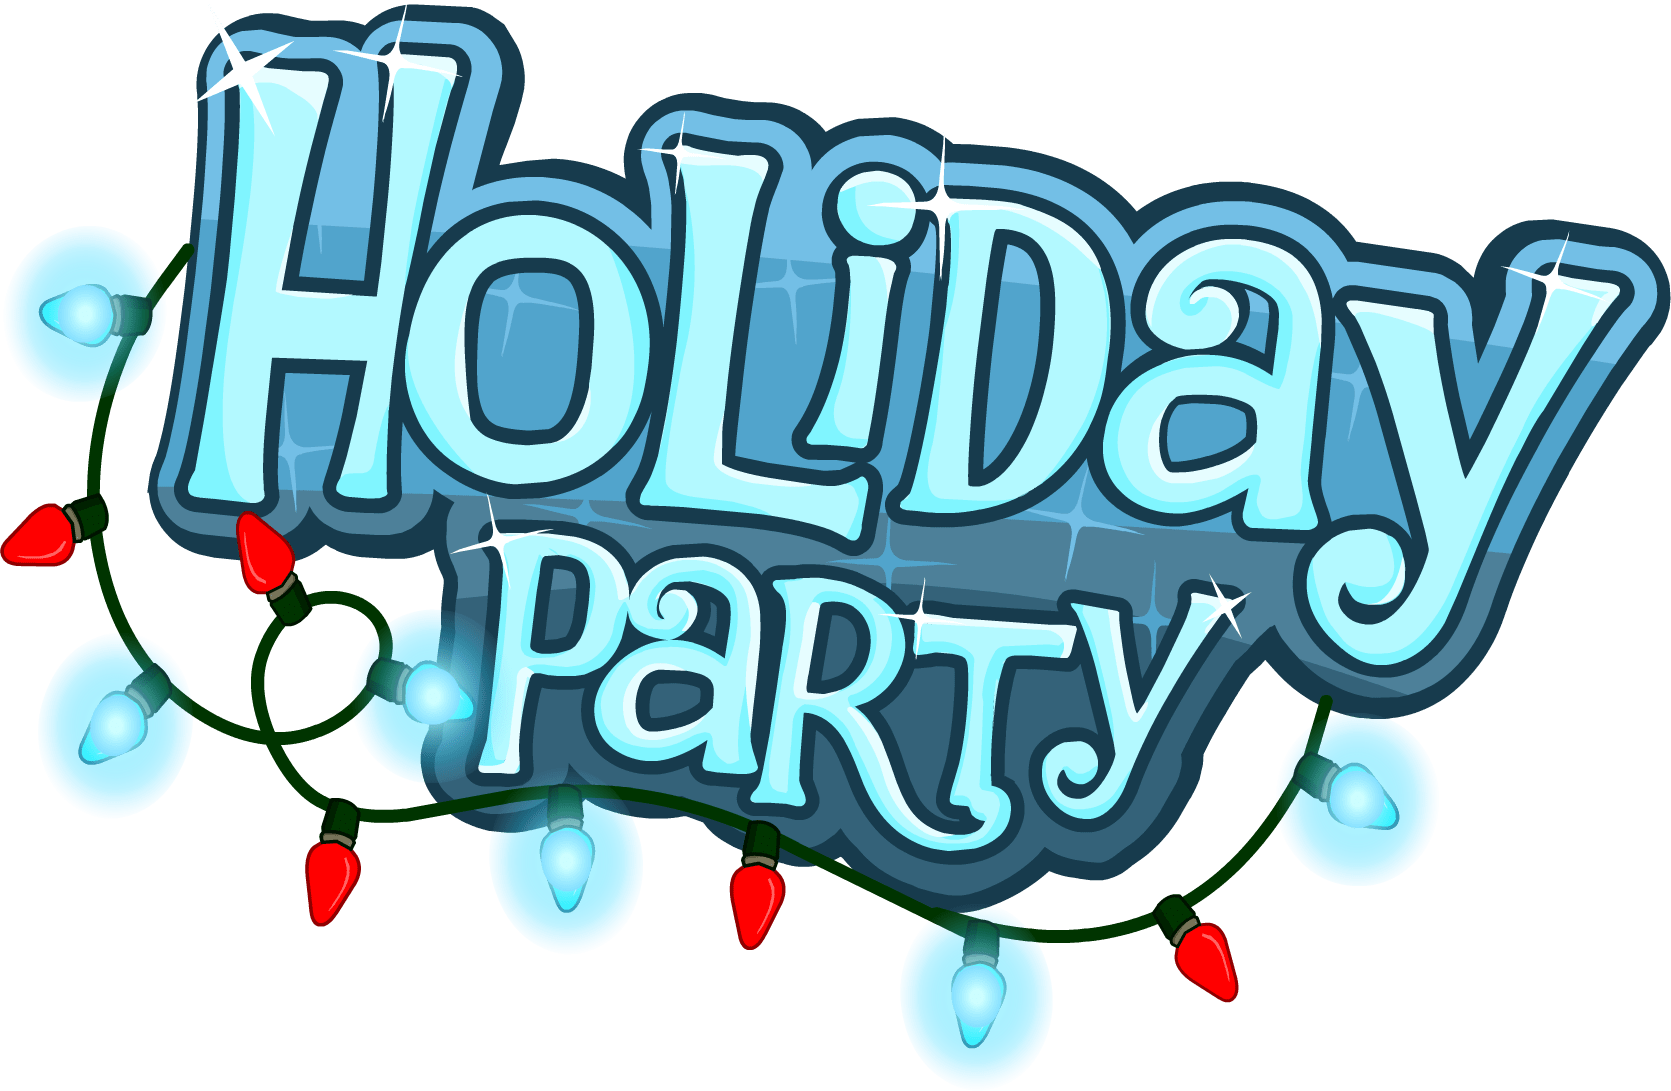 hight resolution of holiday party out sober minnesota meeting clipart vector